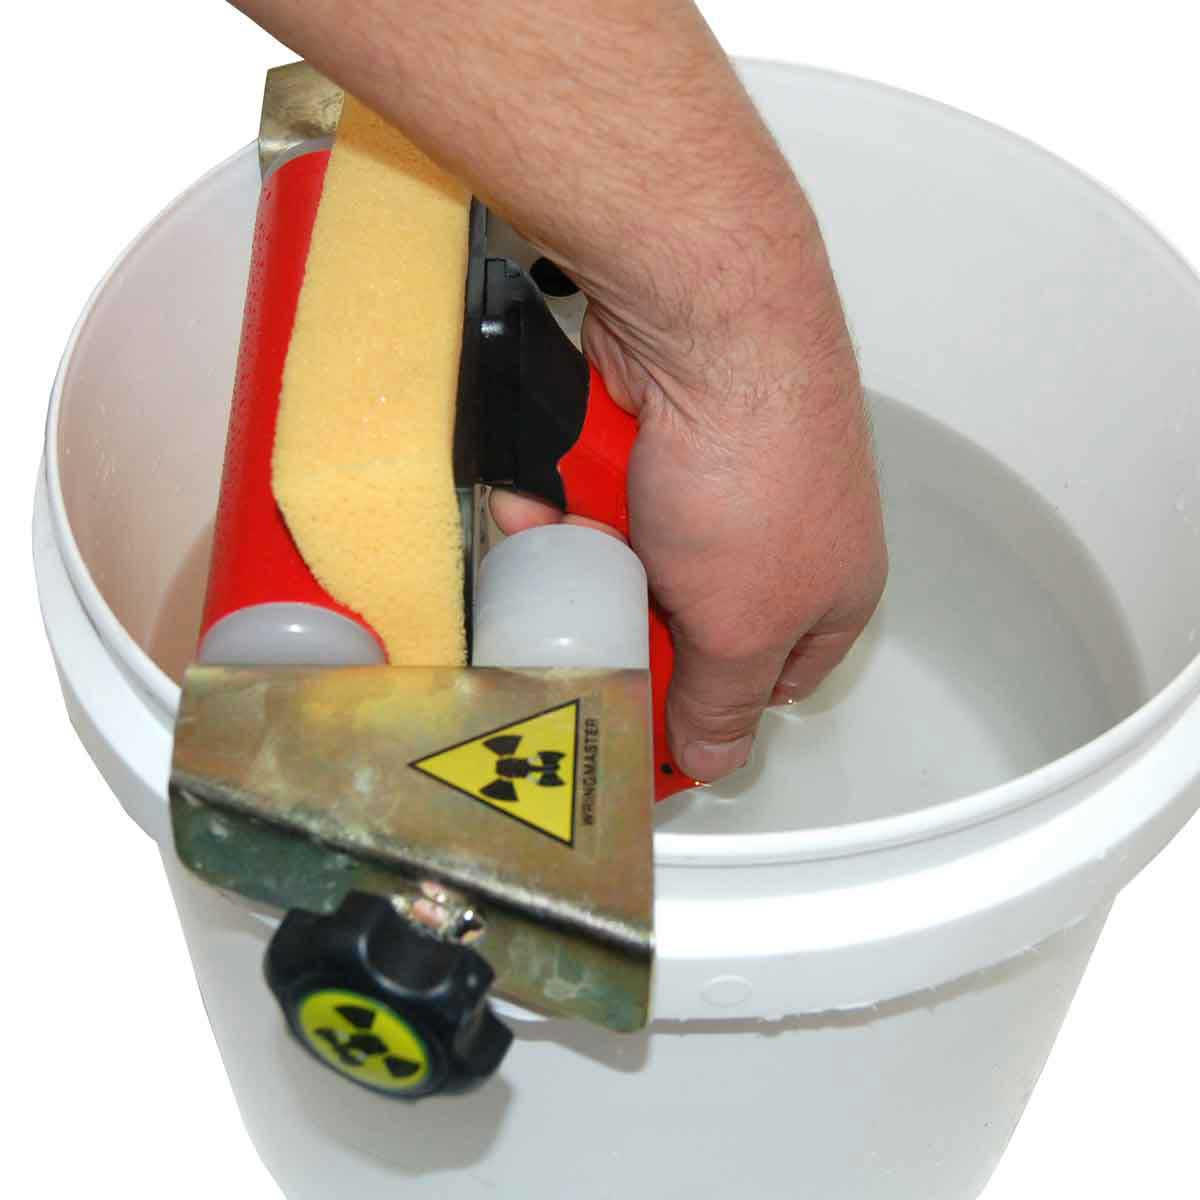 Wringmaster Grout Clean bucket